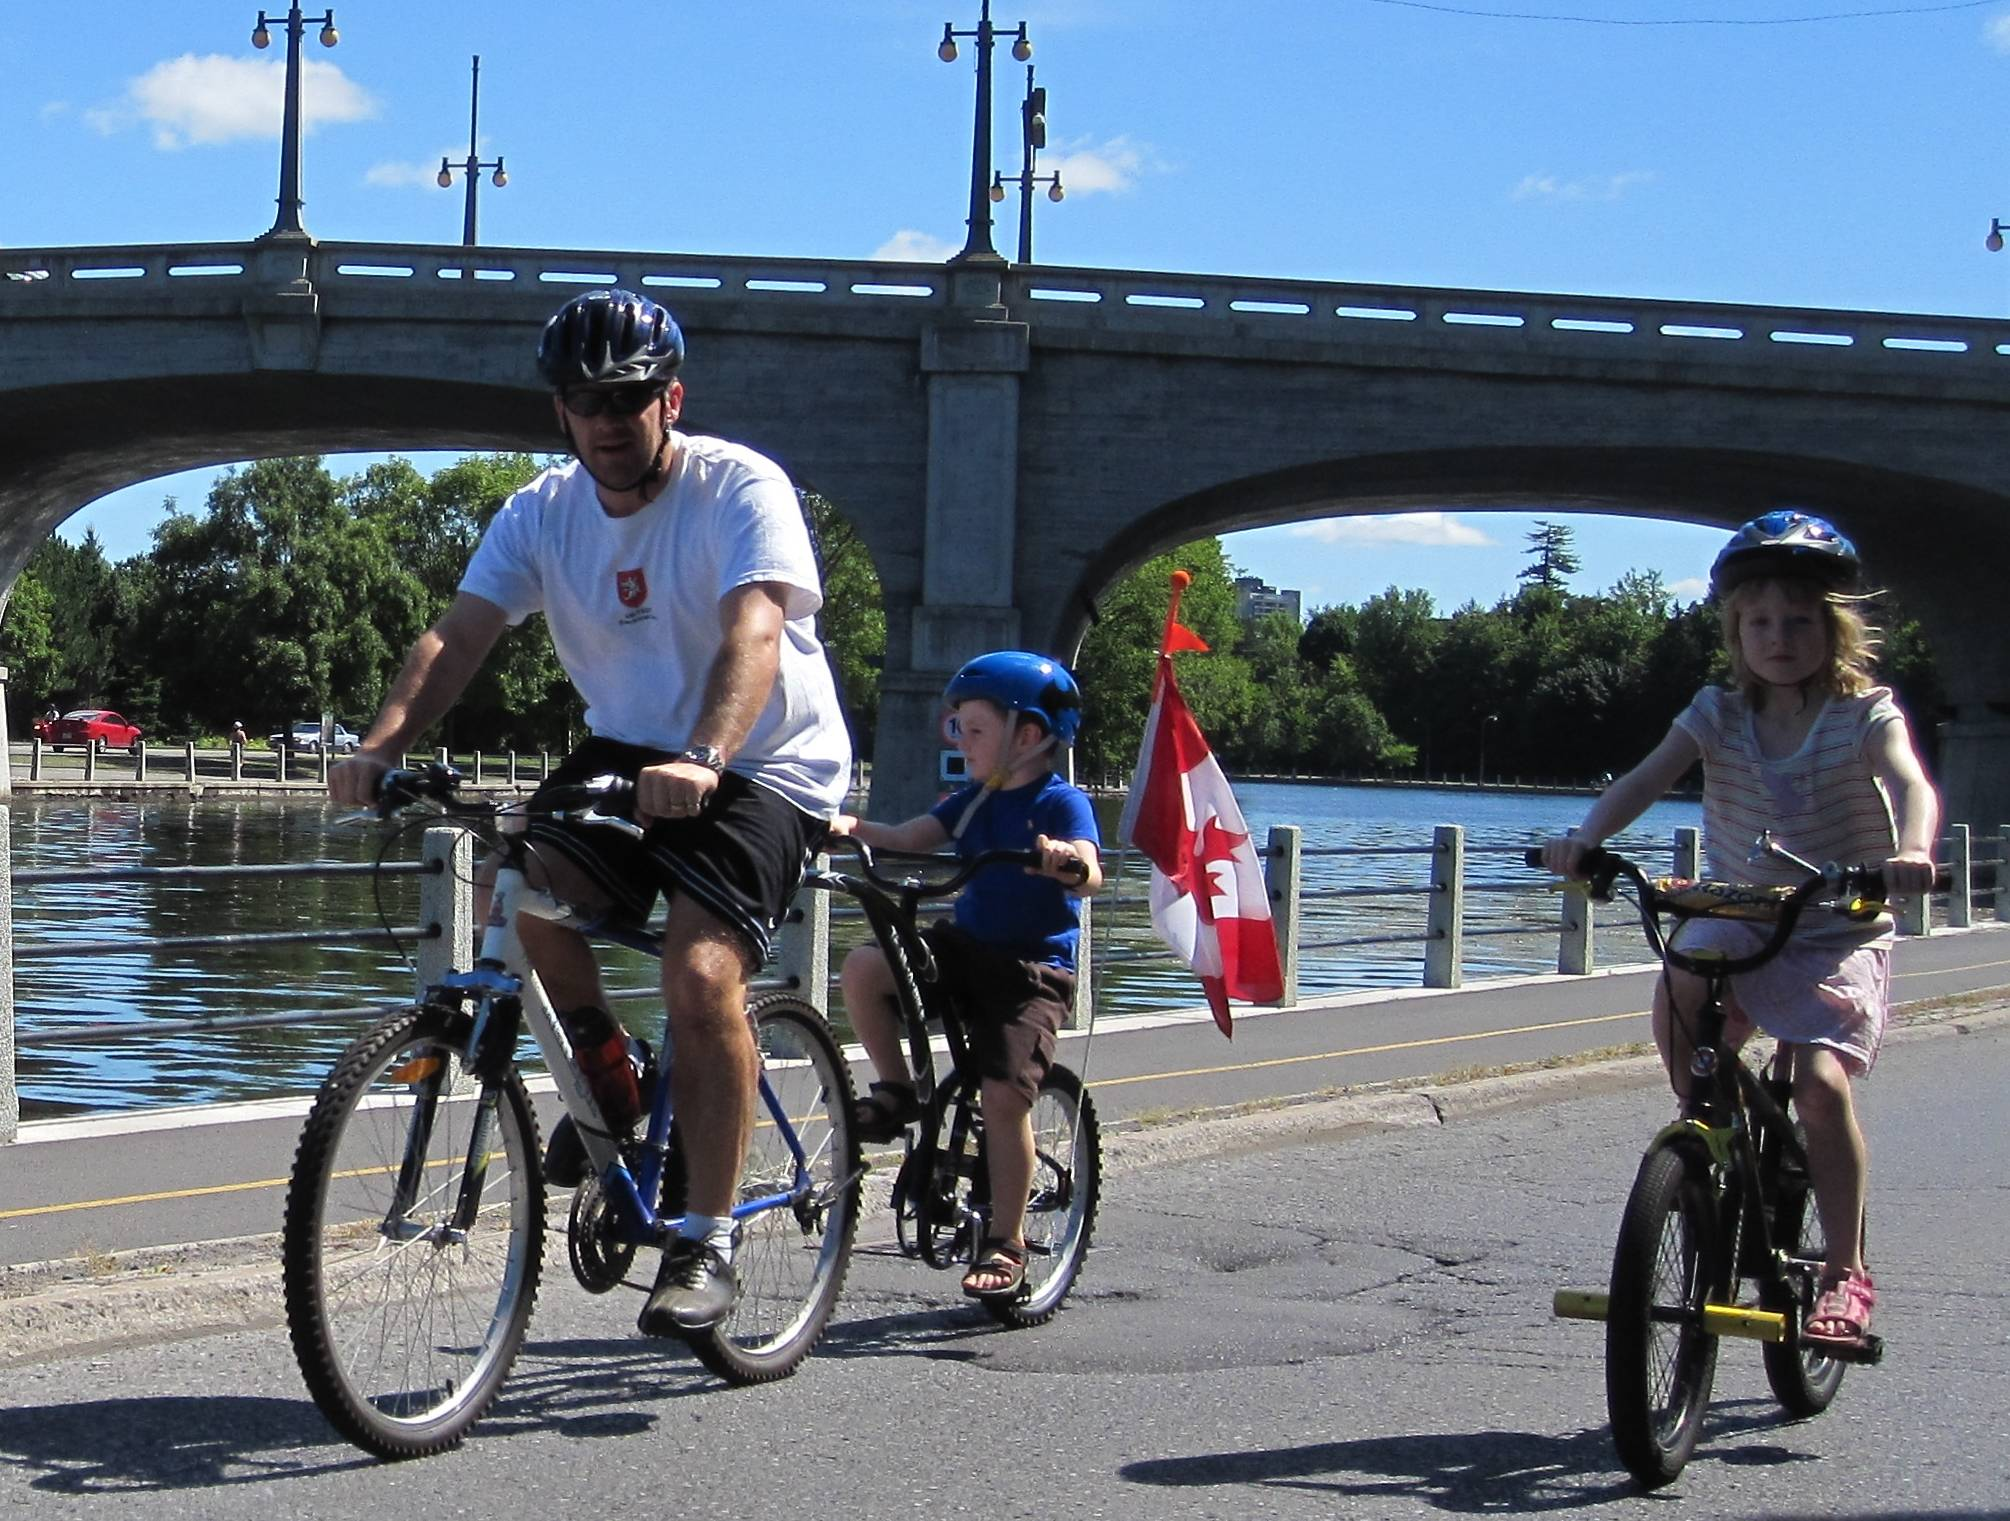 2011-07-24-ottawa-bicycle-culture-7